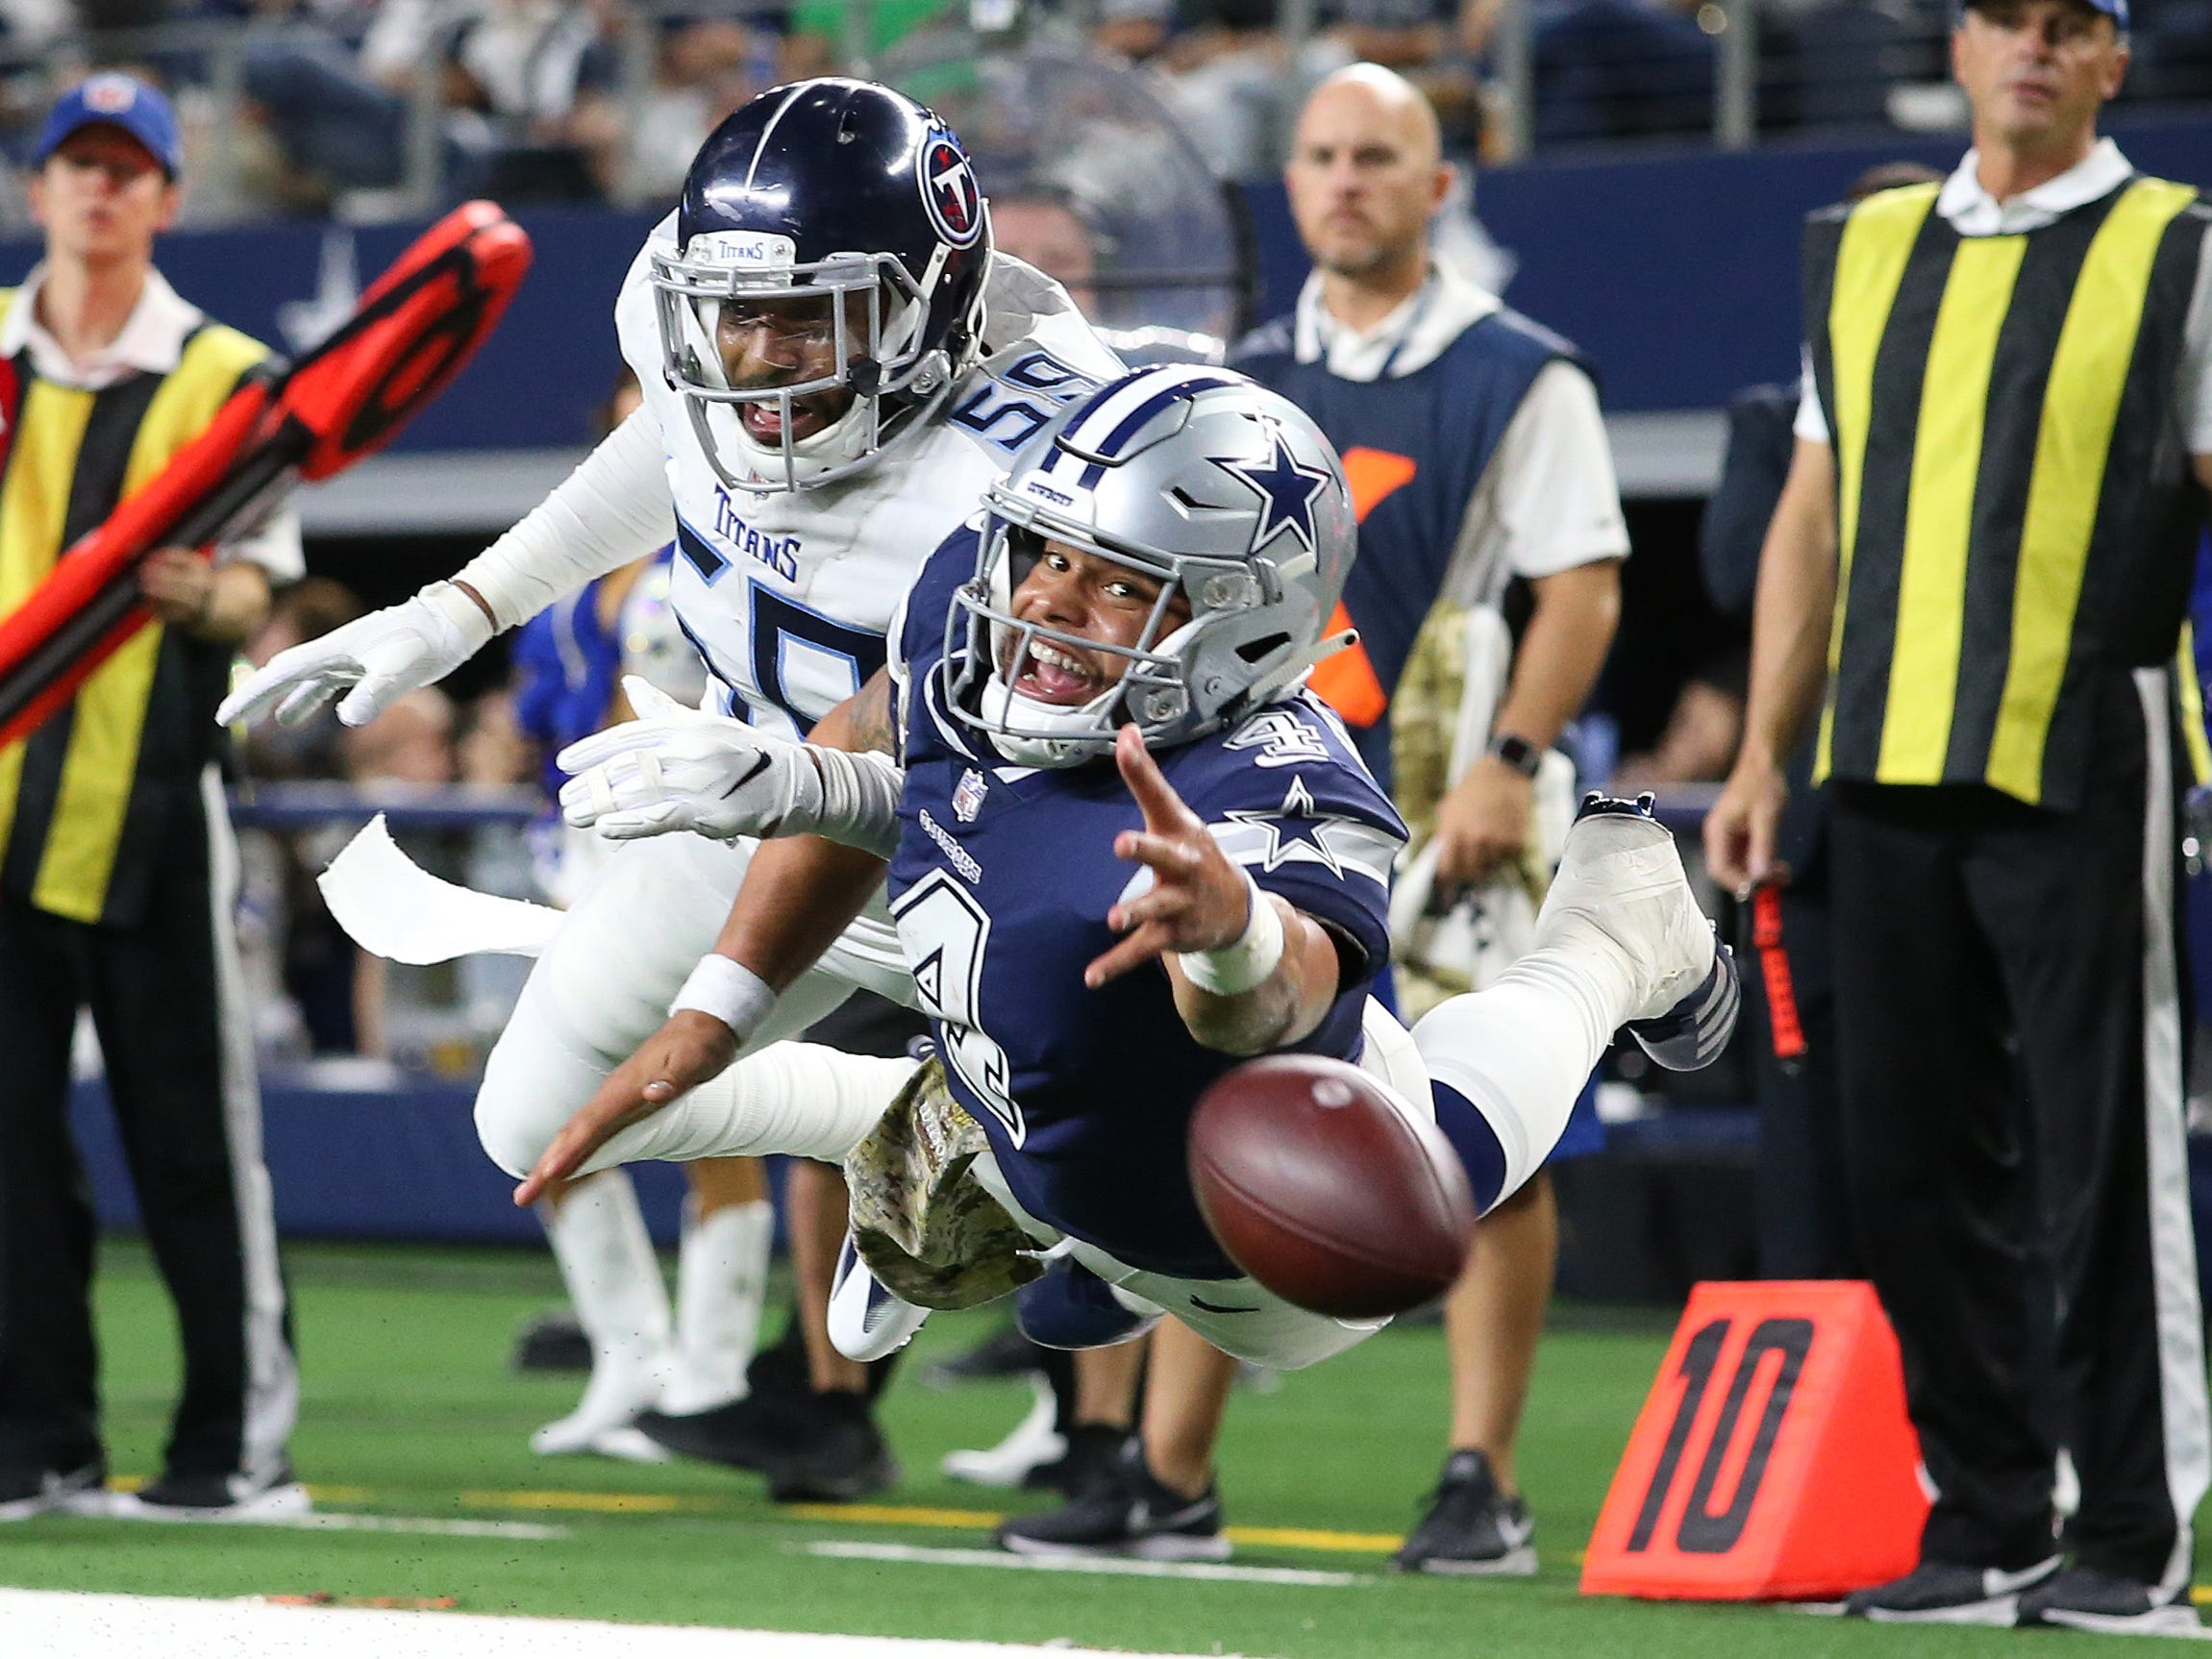 Cowboys quarterback Dak Prescott dives for a pass in the fourth quarter against Tennessee Titans linebacker Wesley Woodyard at AT&T Stadium.